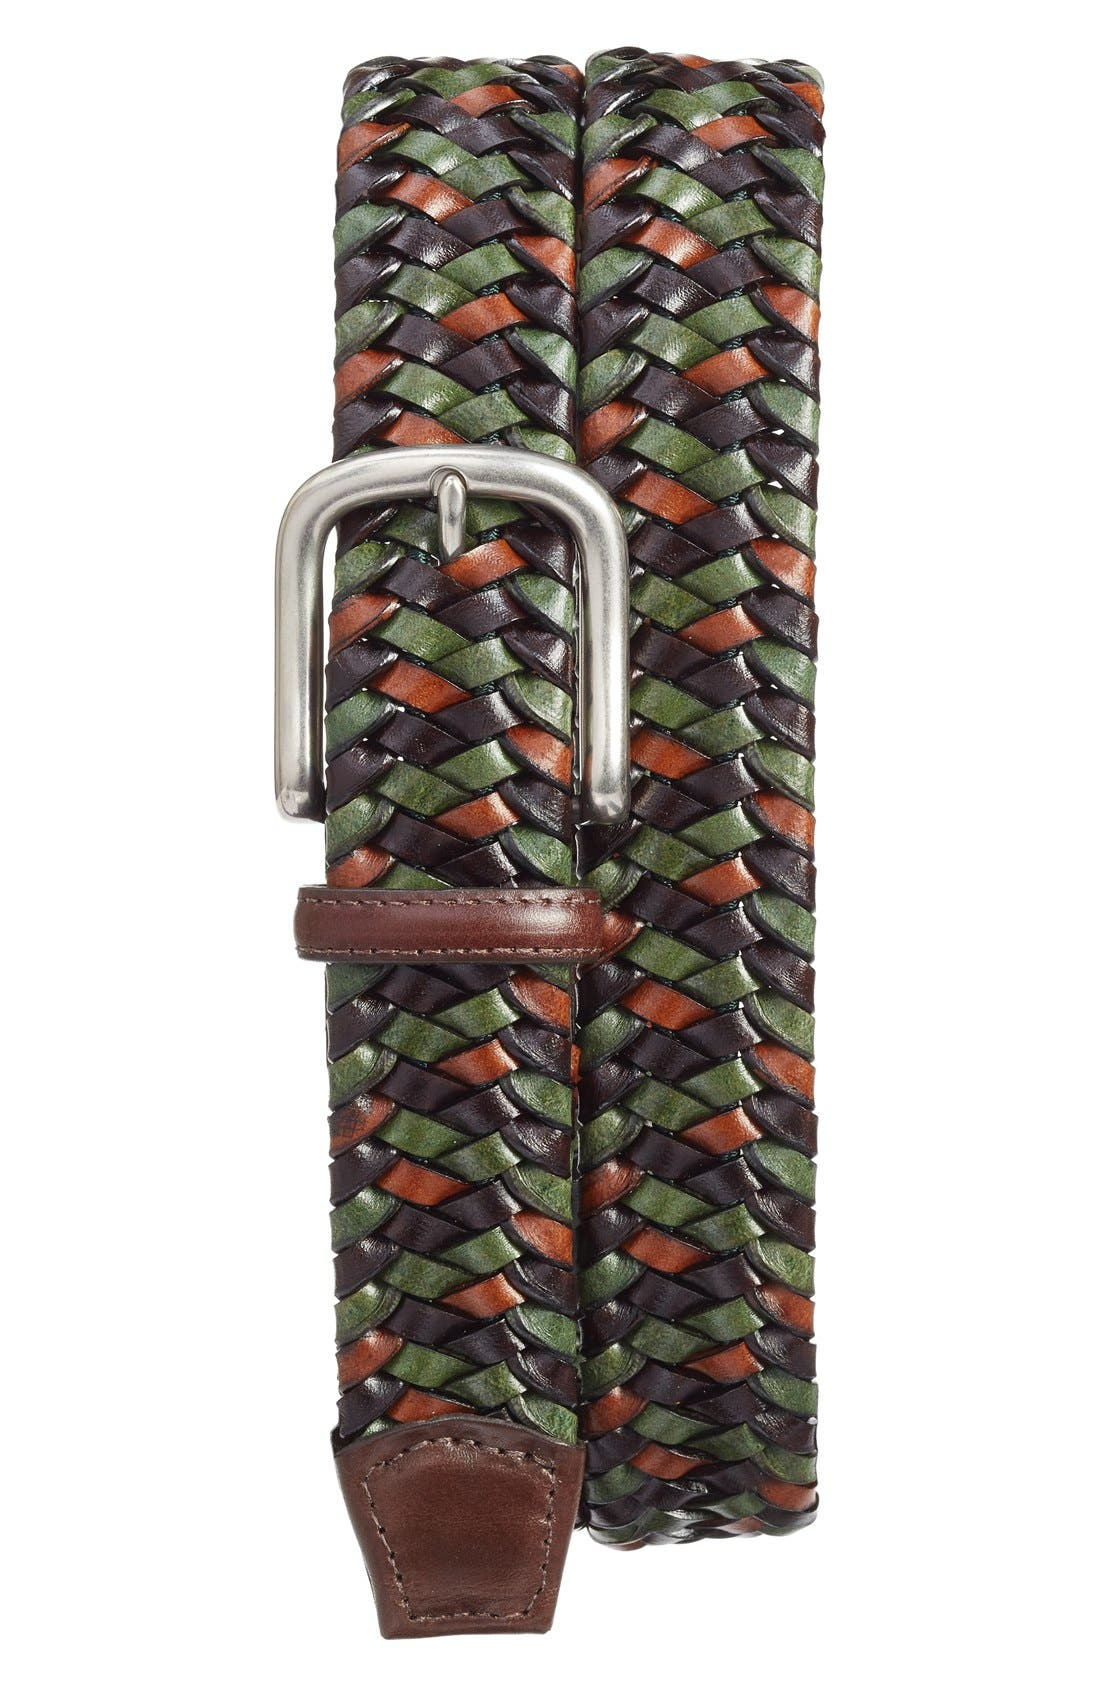 Torino Belts Woven Leather Belt